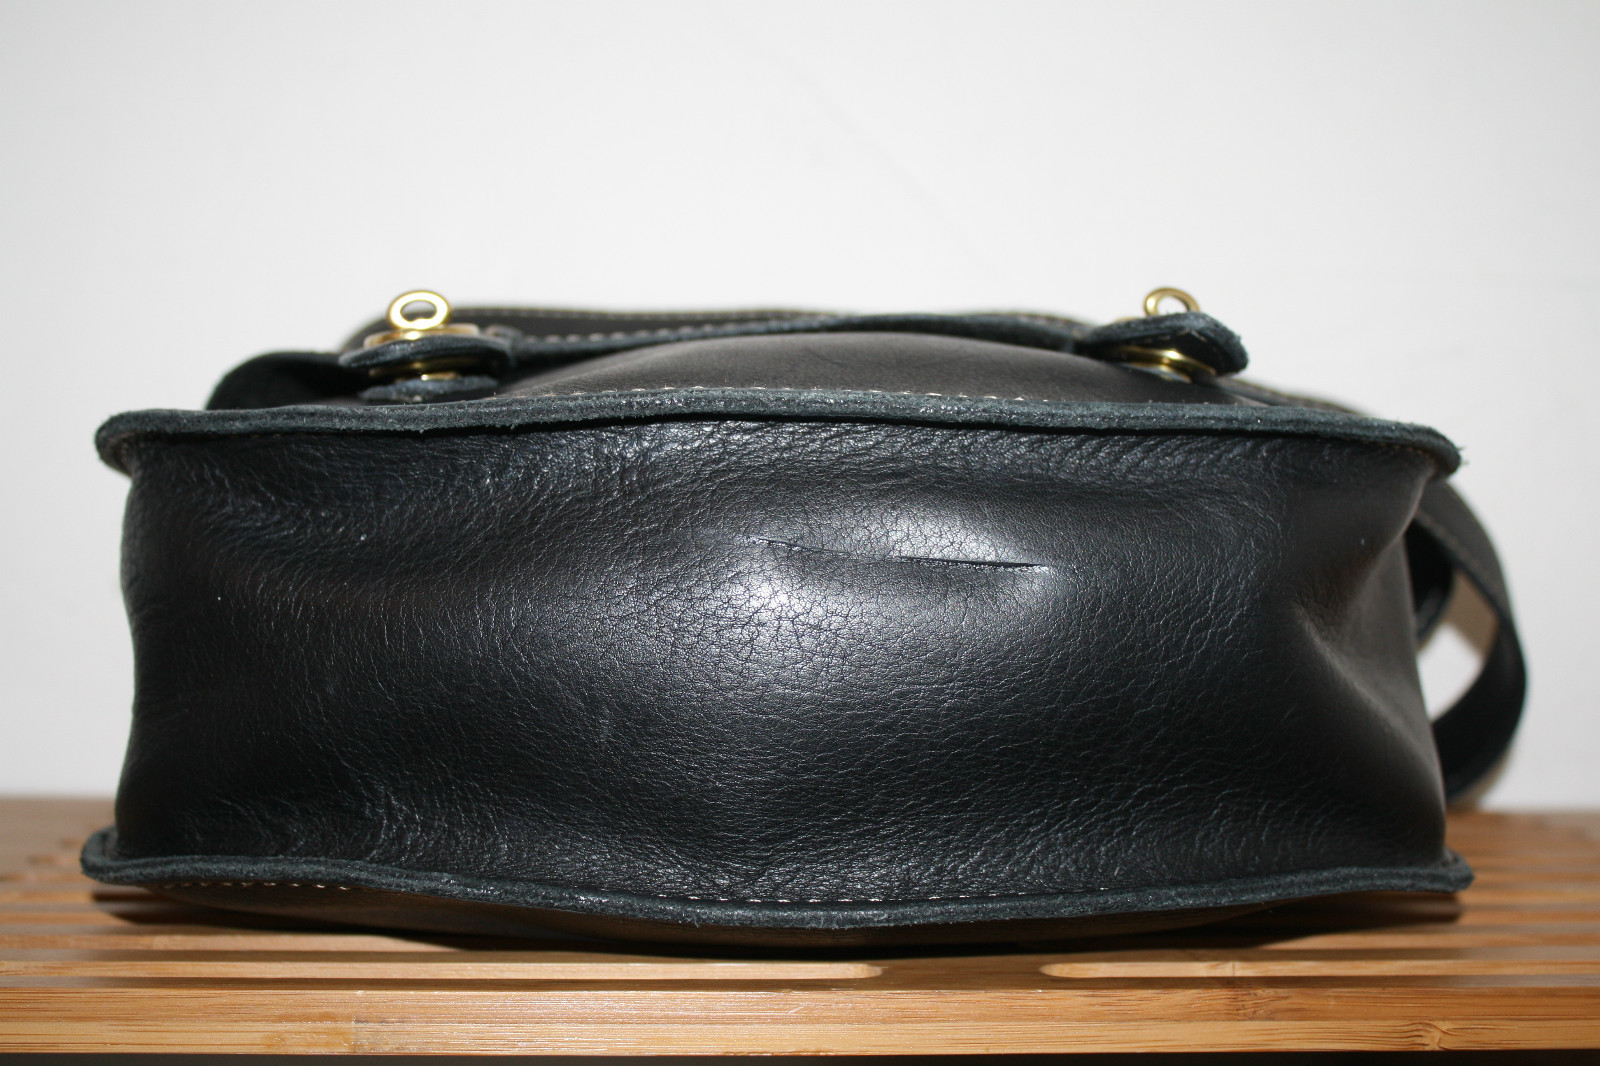 Follow This Awesome You Video For Instructions On How To Fix A Cut In Leather From Man With 20 Years The Business It Was So Easy